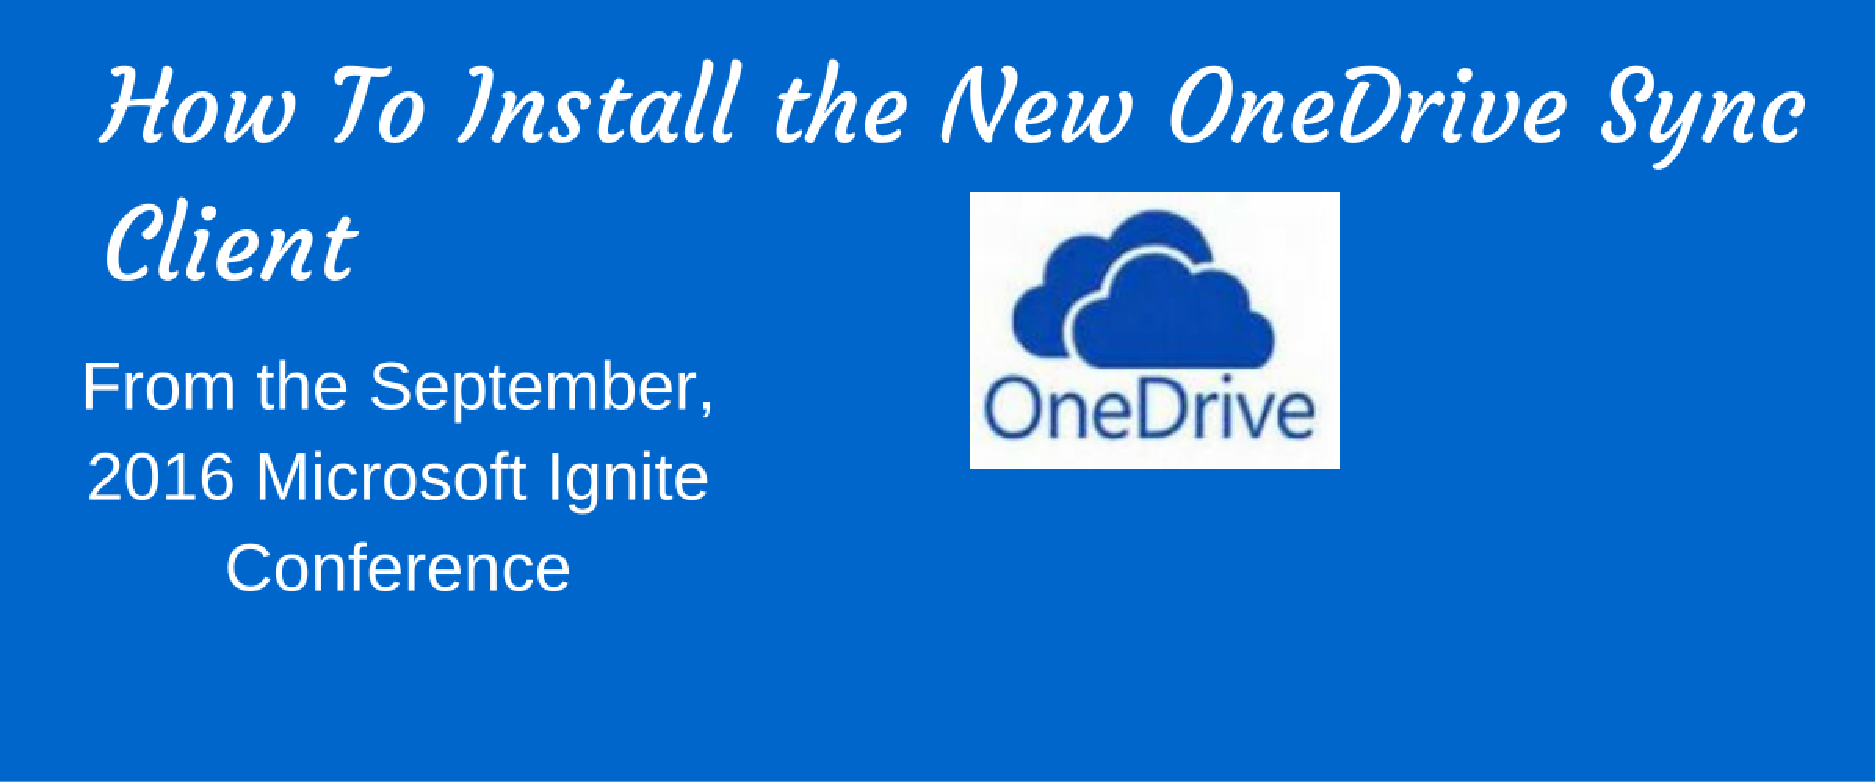 new onedrive sync client